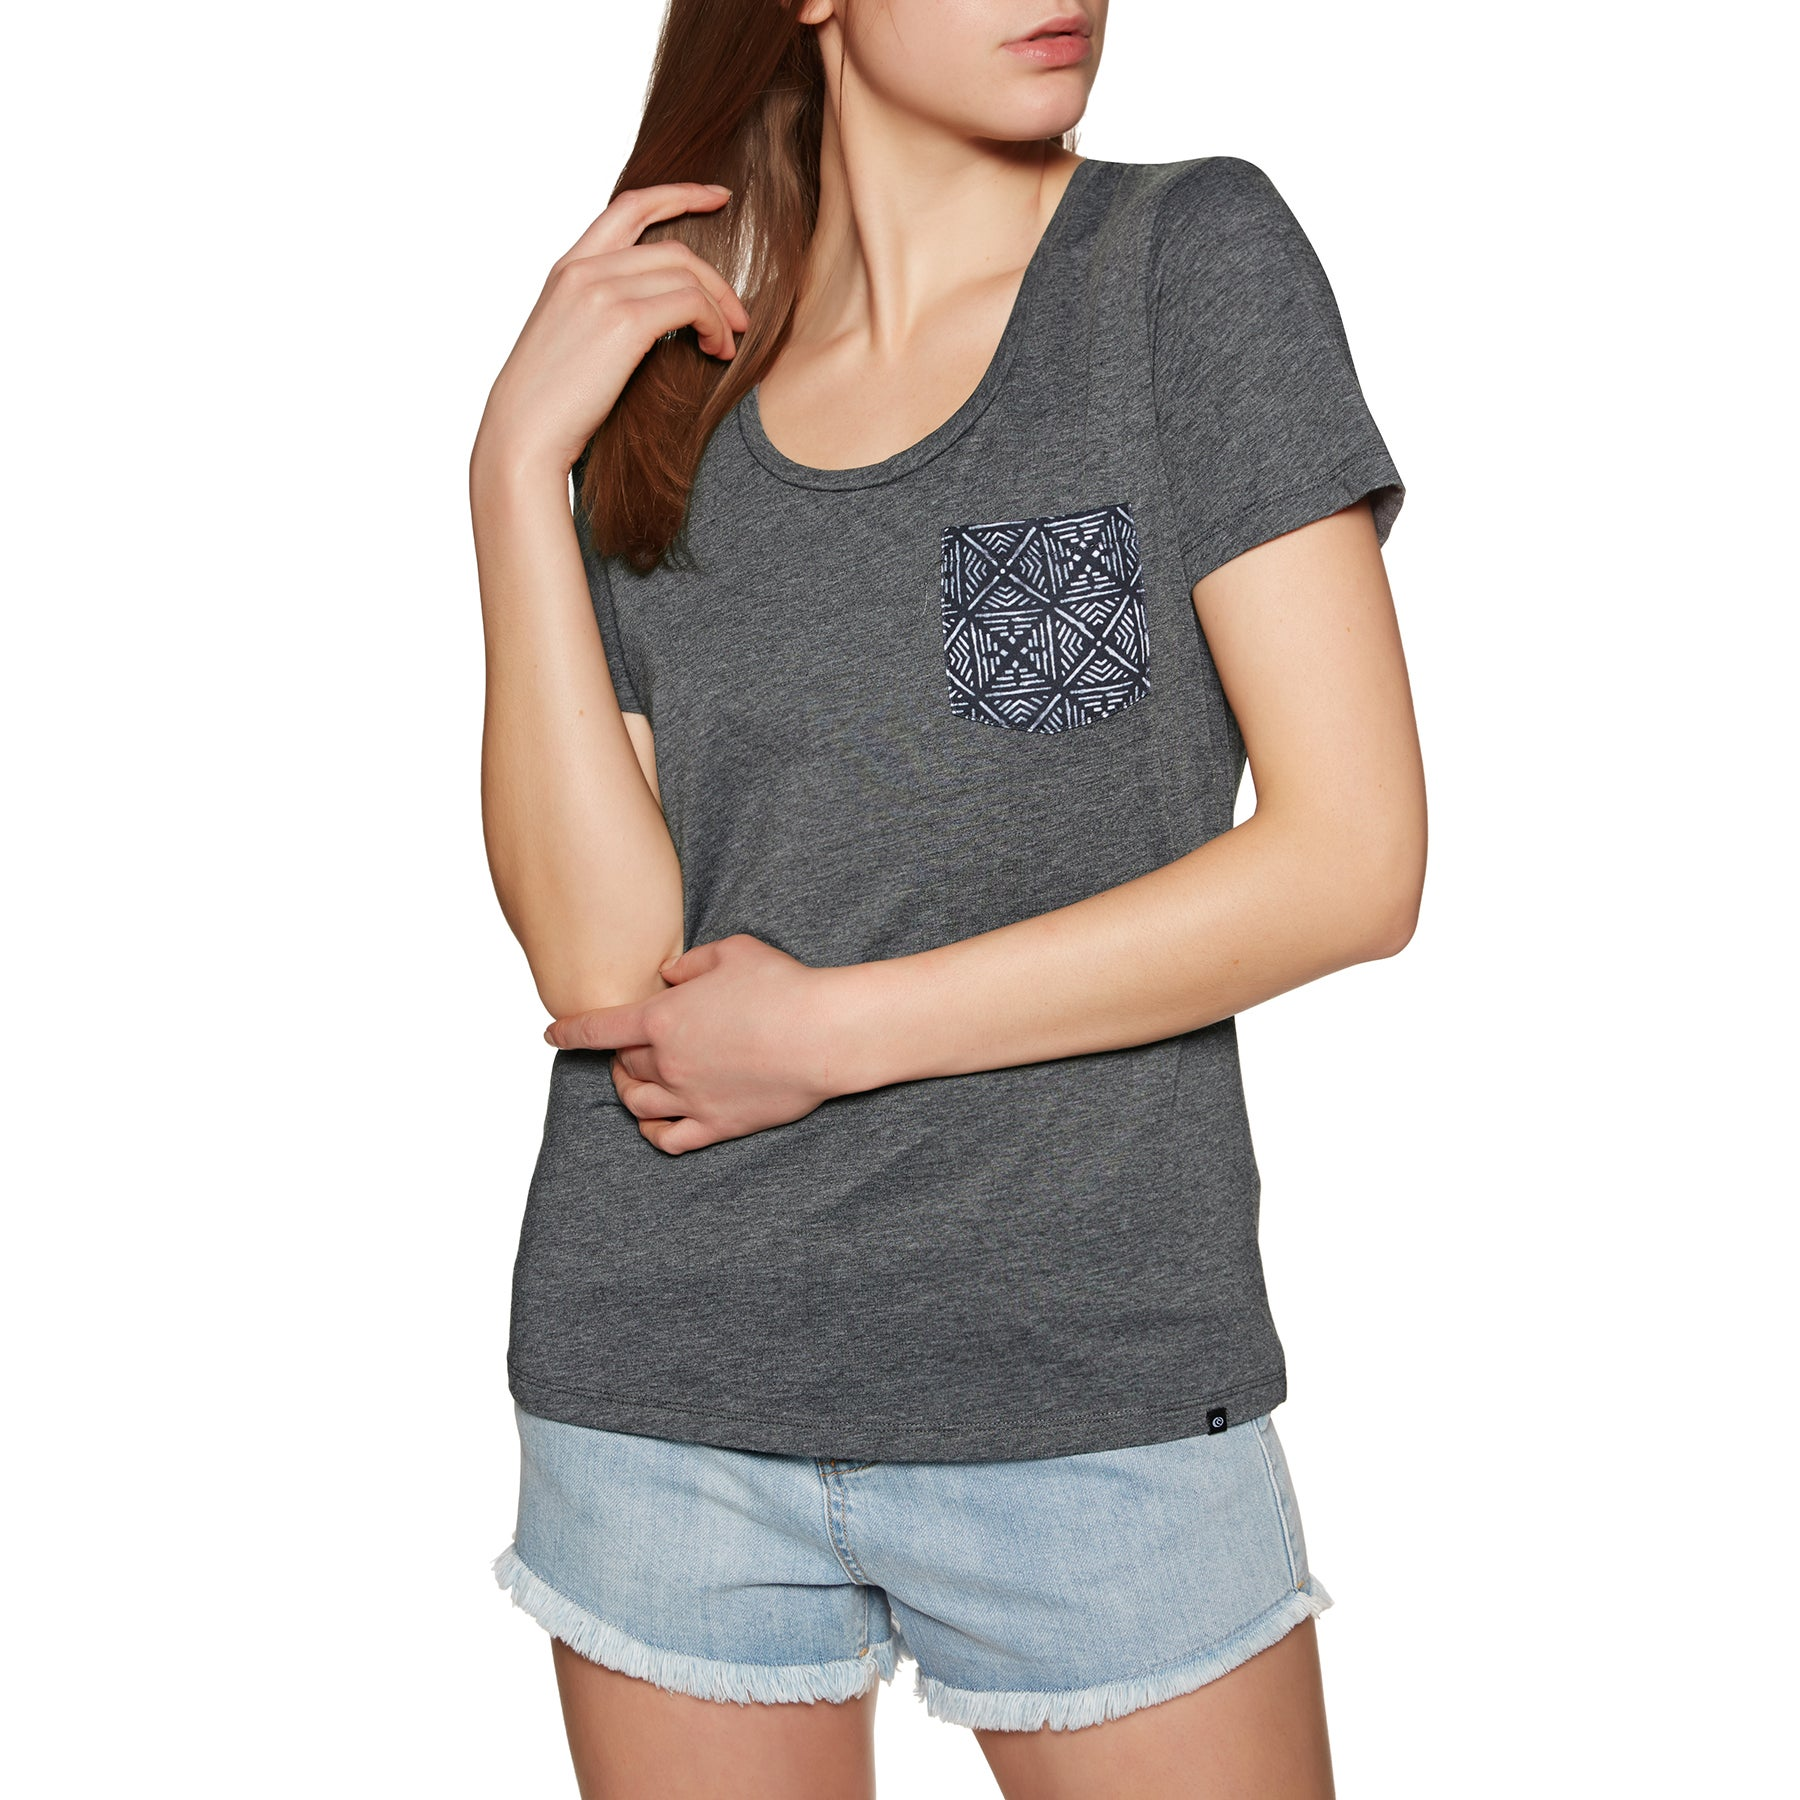 Rip Curl Beauty Pocket Short Sleeve T-Shirt - Black